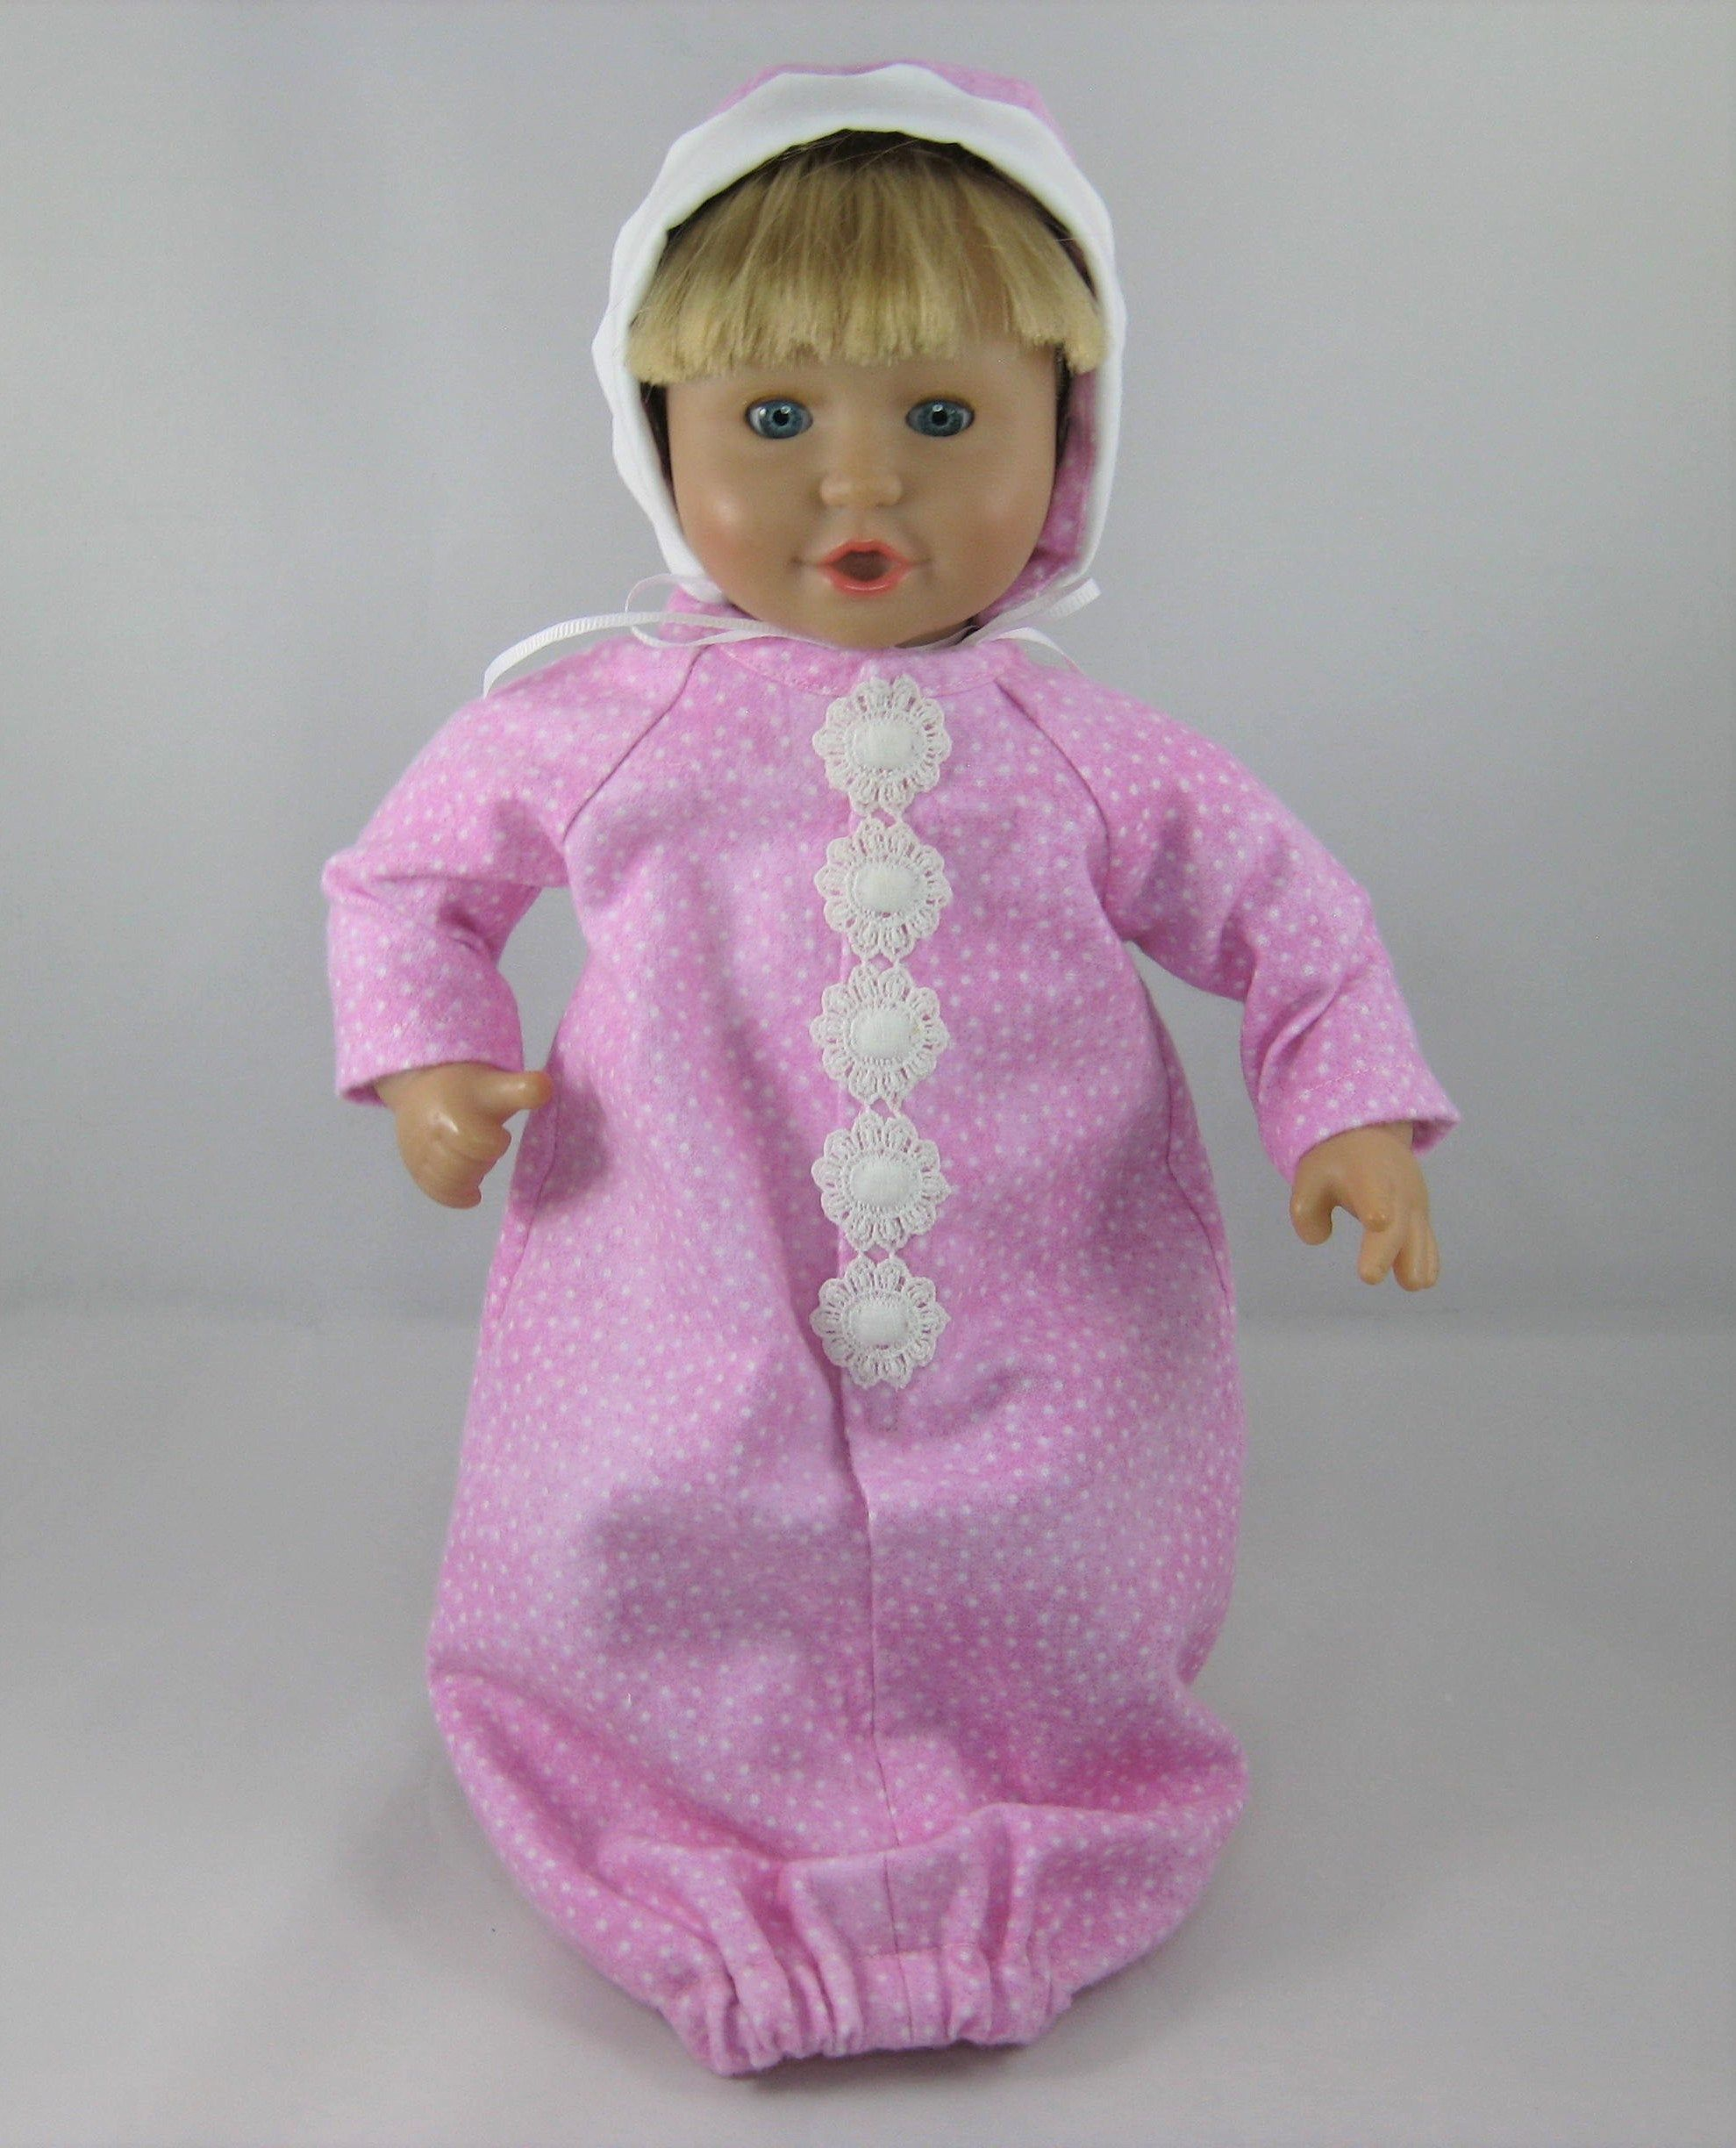 11 13 Baby Doll Pink Sleeper And Bonnet By Theforgetmenotshop On Etsy Baby Doll Clothes Cute Pajamas Doll Clothes